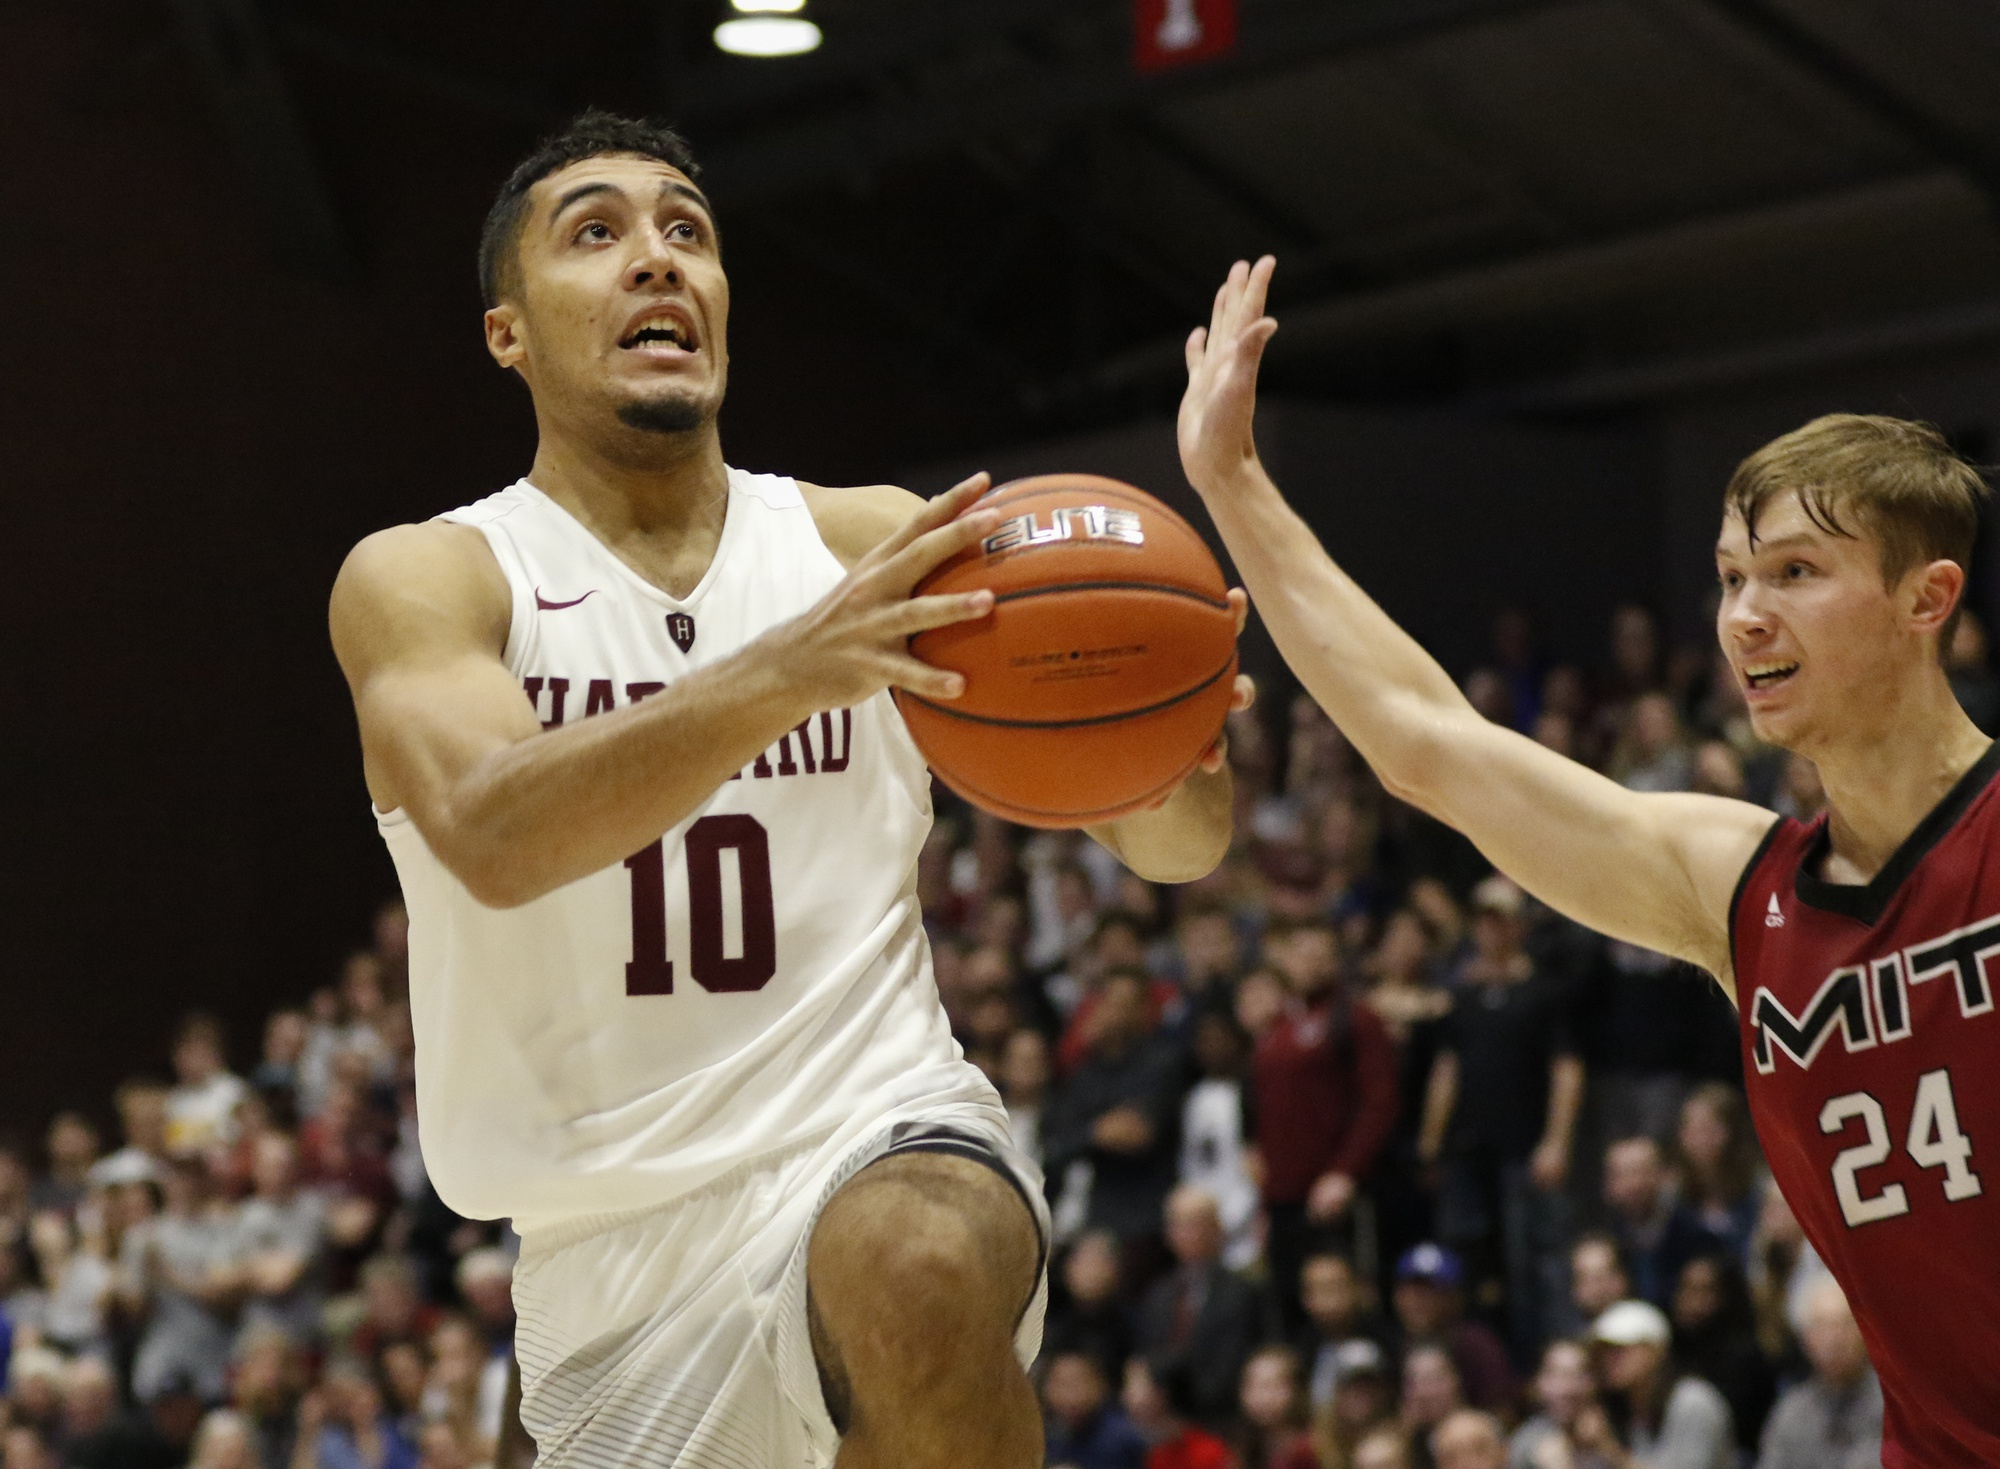 Freshman guard Noah Kirkwood dropped 20 points in Harvard's victory over Holy Cross.